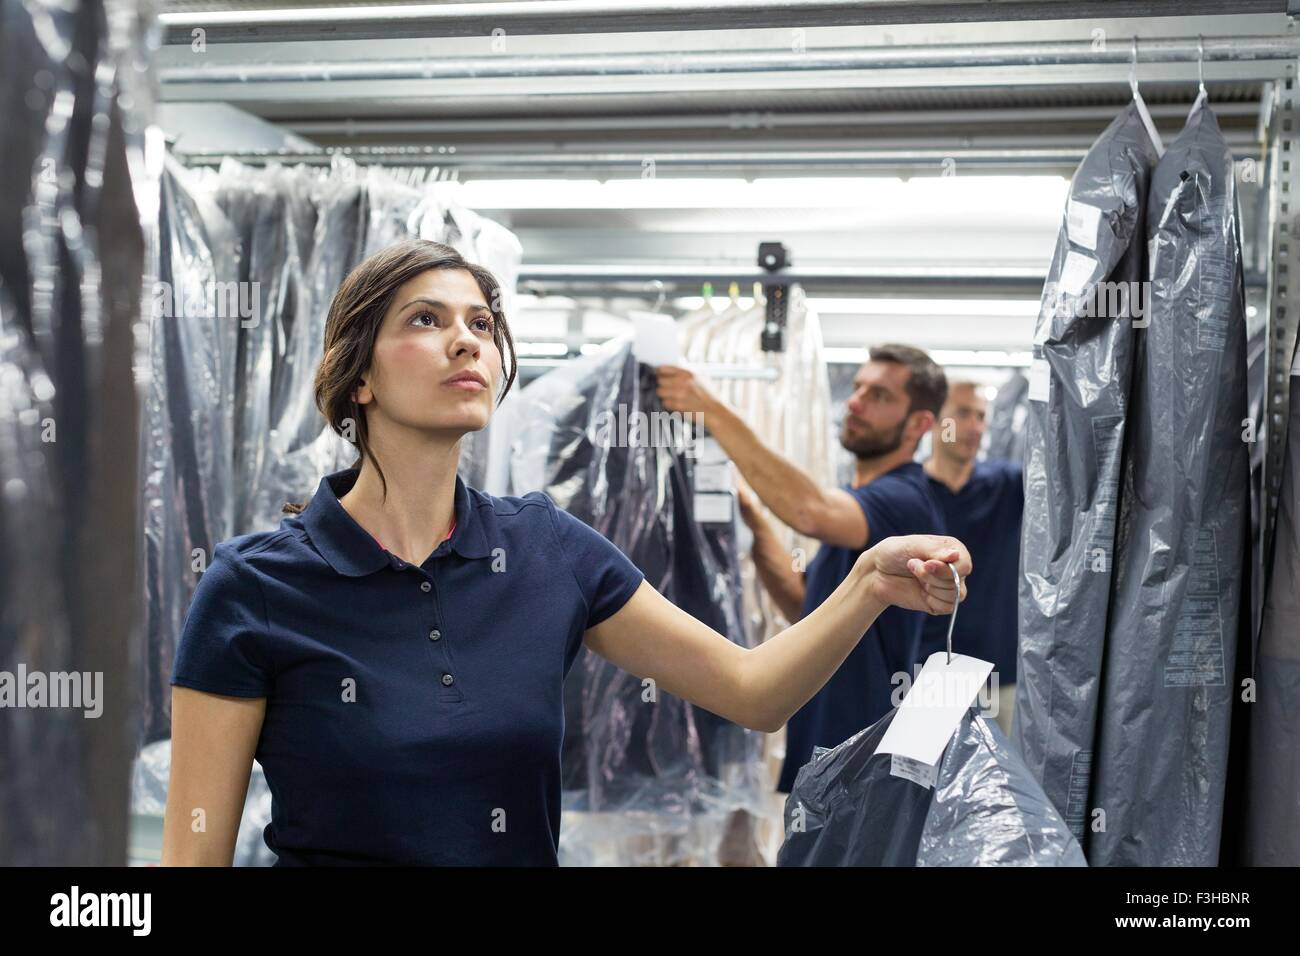 Warehouse workers doing garment stock take in distribution warehouse - Stock Image